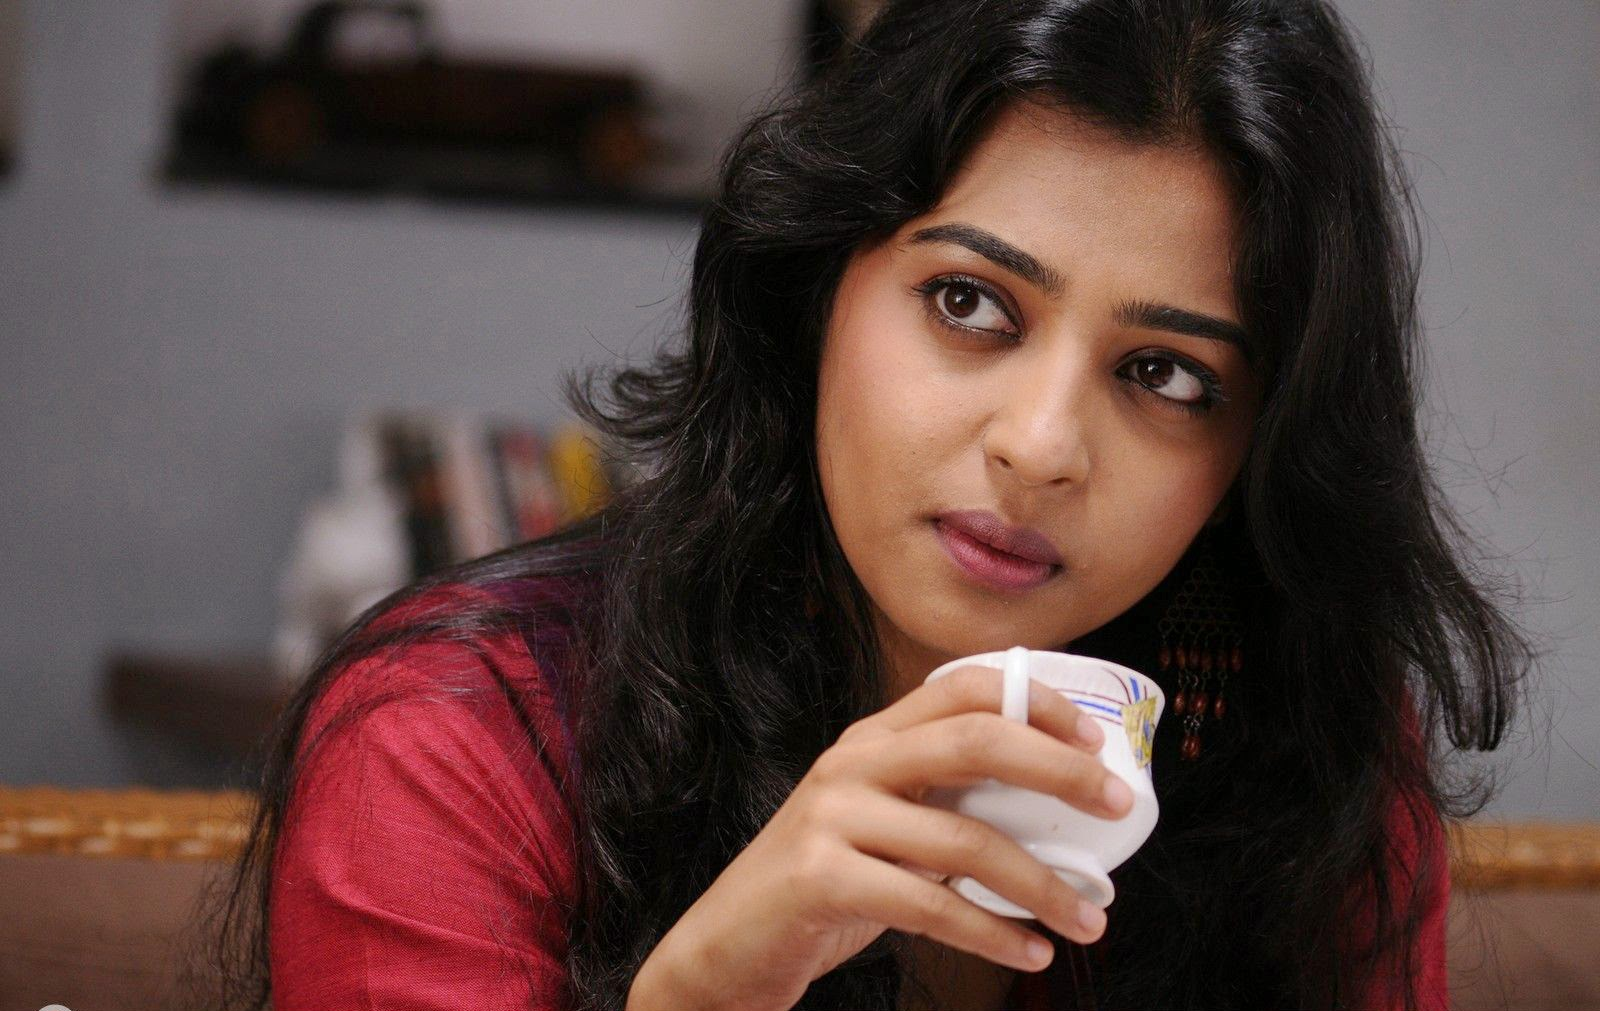 Radhika Apte Wallpaper